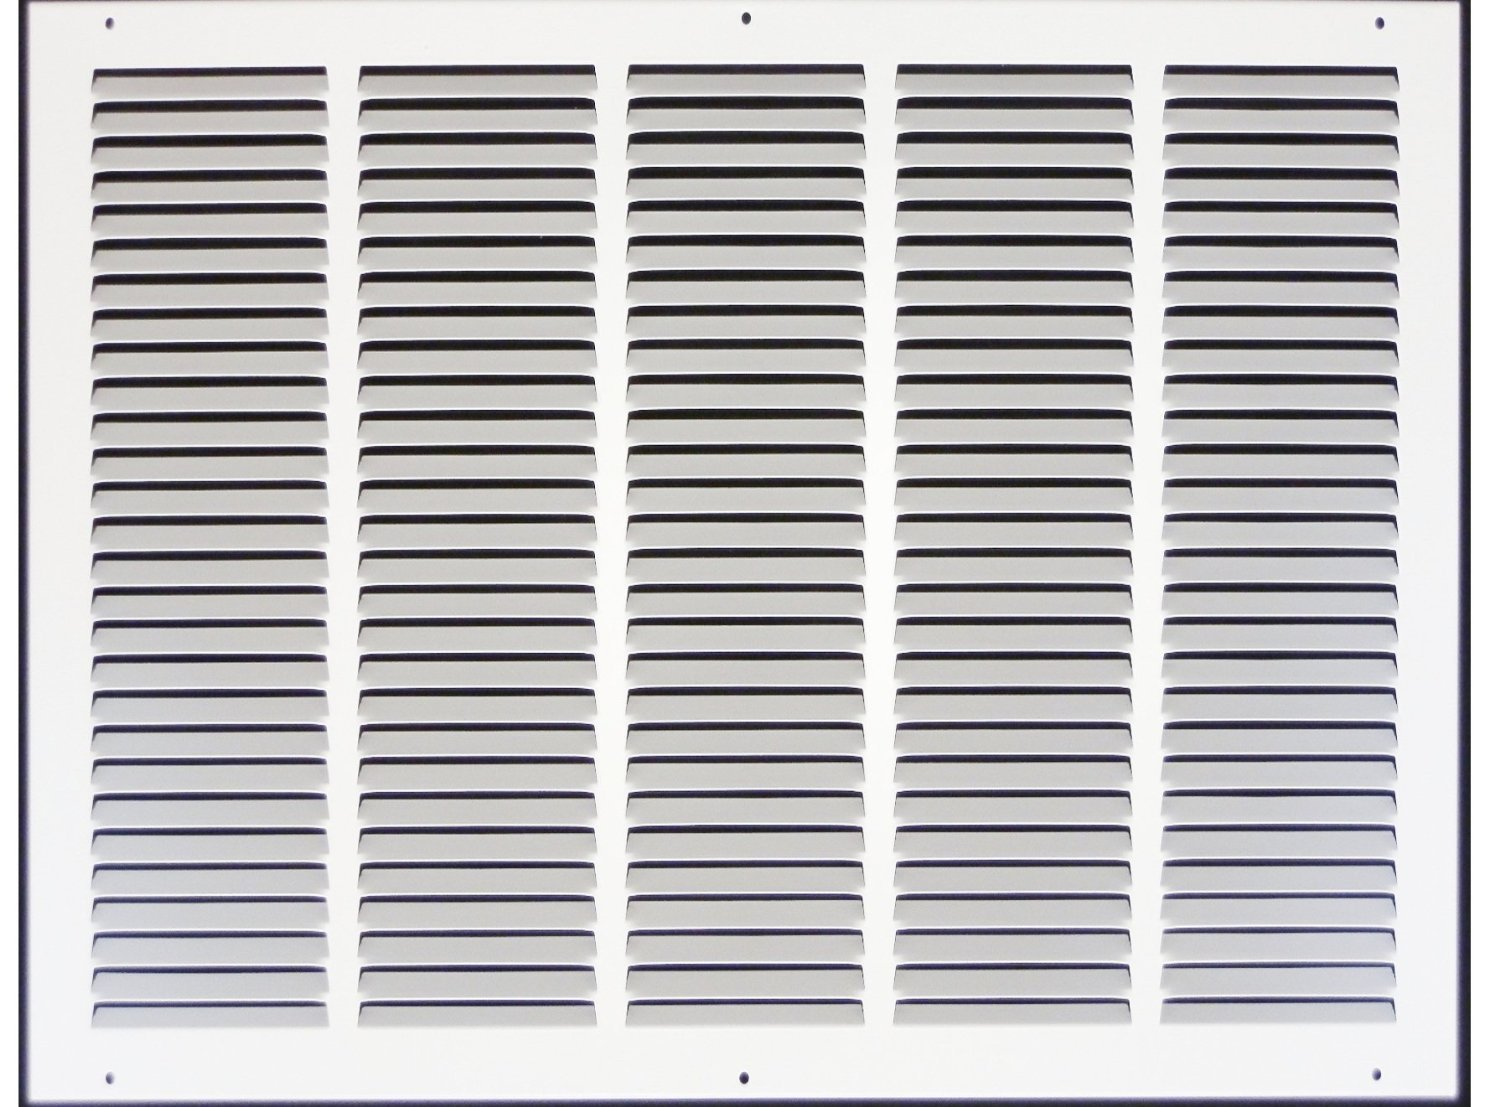 25''w X 20''h Steel Return Air Grilles - Sidewall and Cieling - HVAC DUCT COVER - White [Outer Dimensions: 26.75''w X 21.75''h]